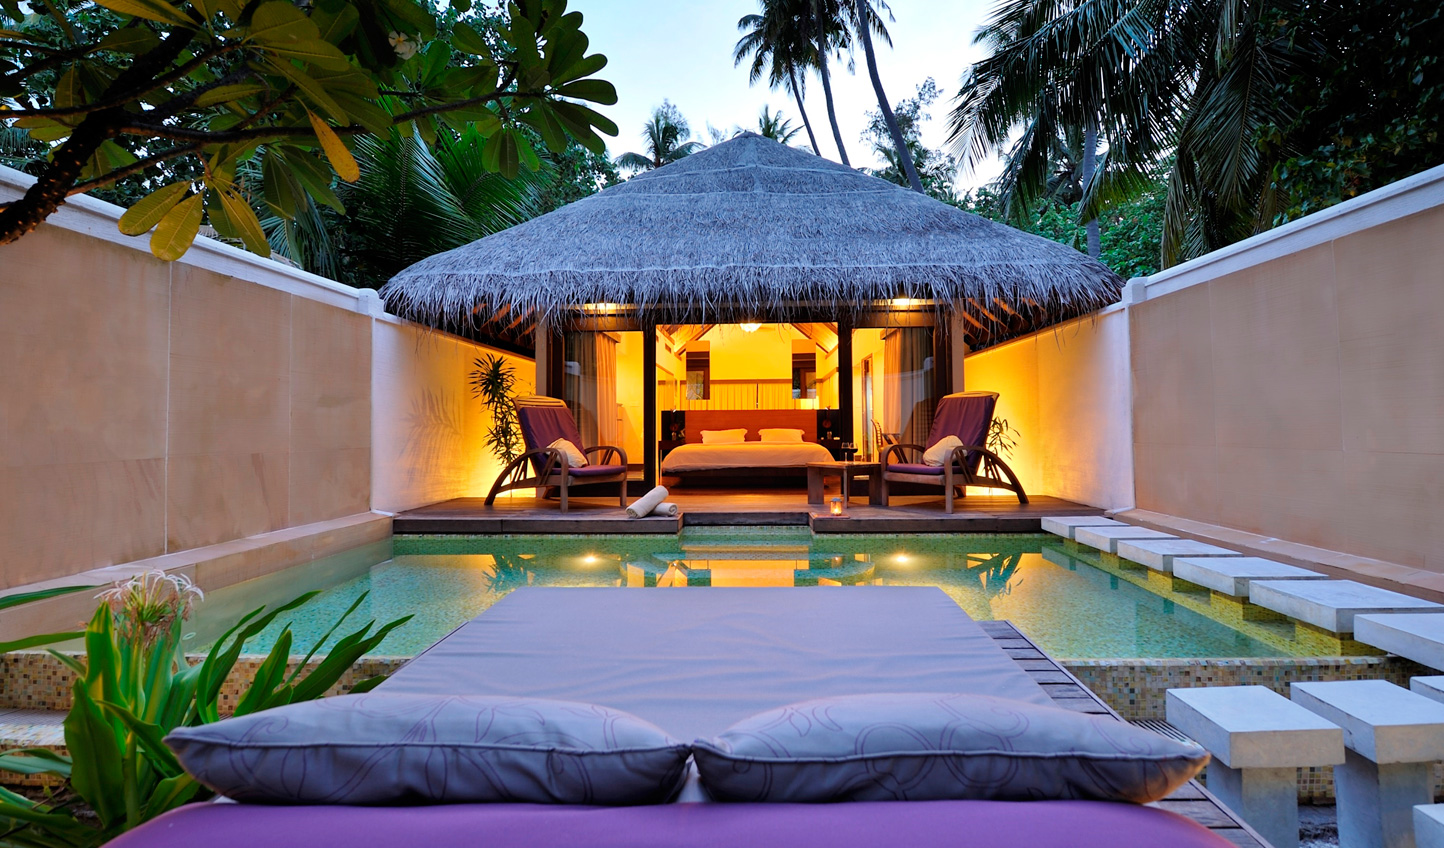 A private oasis awaits